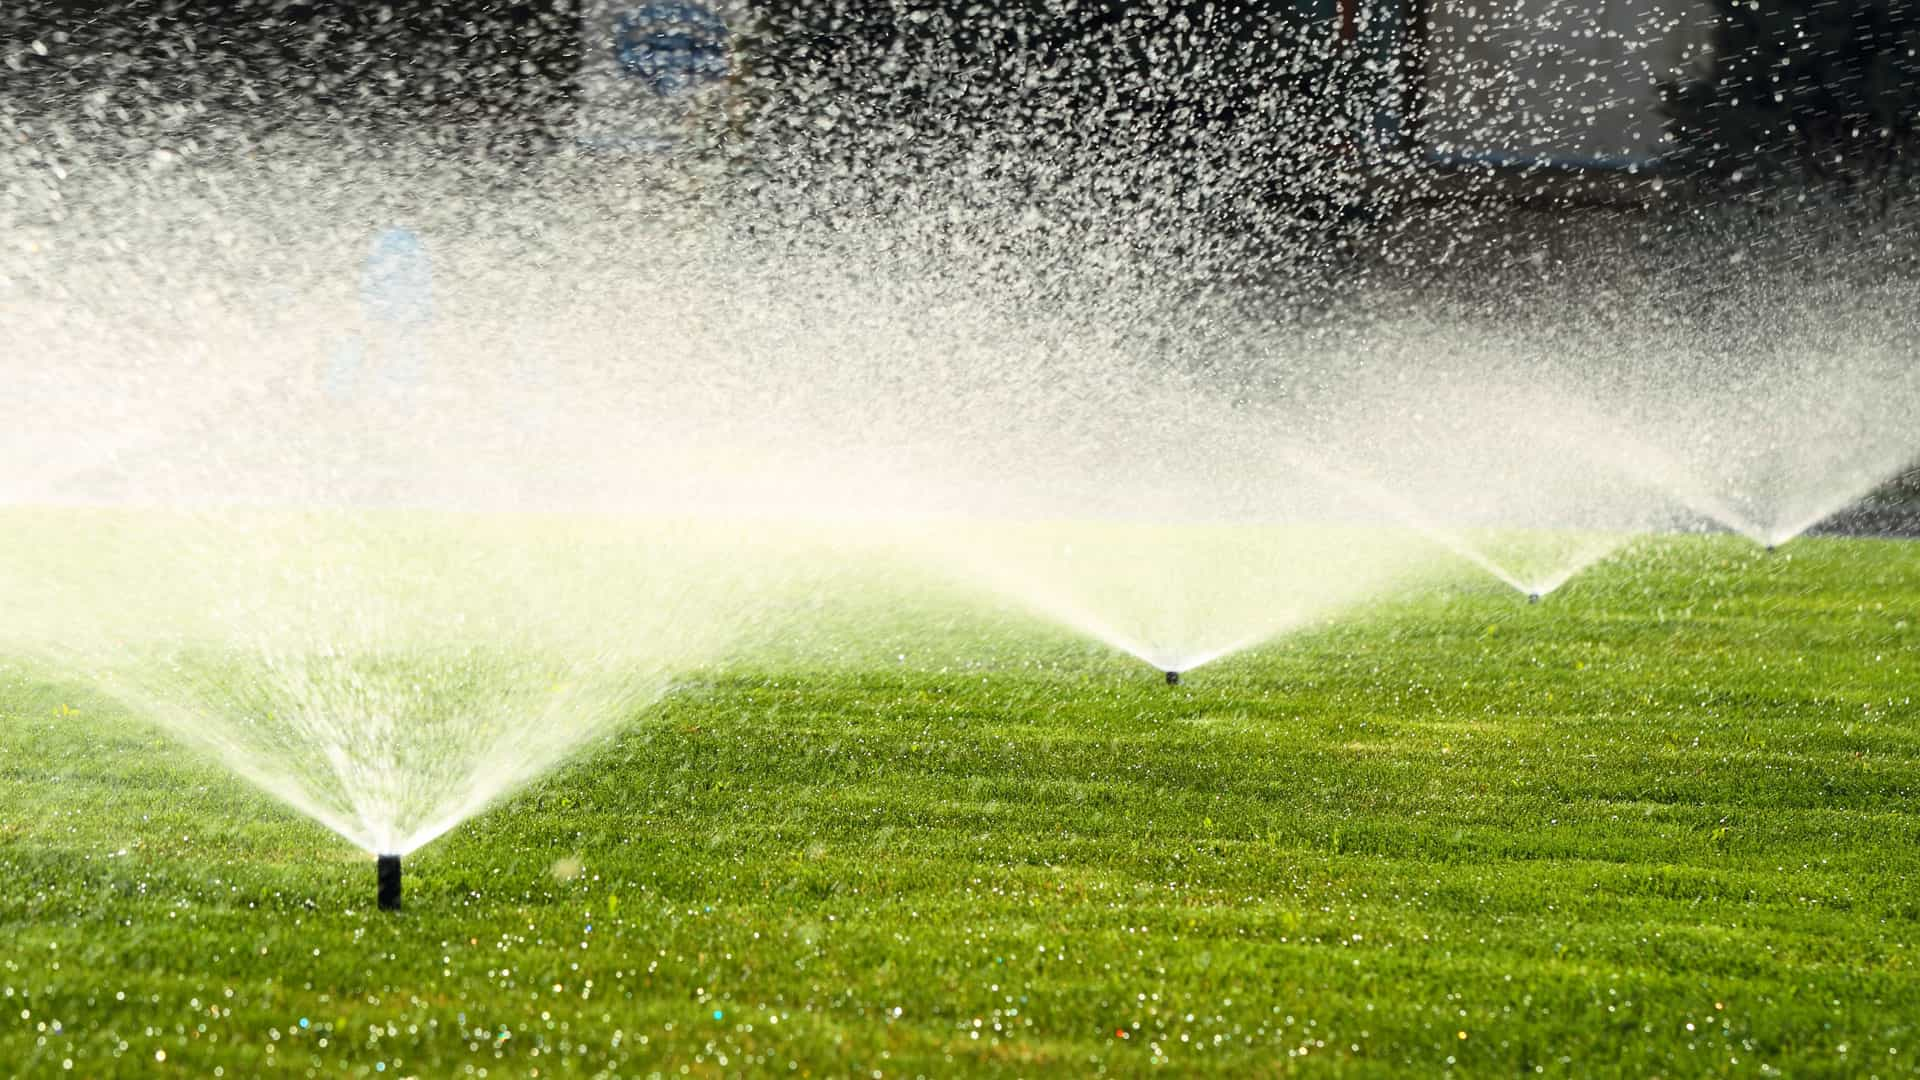 Commercial Irrigation Sprinklers | SAWS Garden Style Conservation Water Saver San Antonio Texas